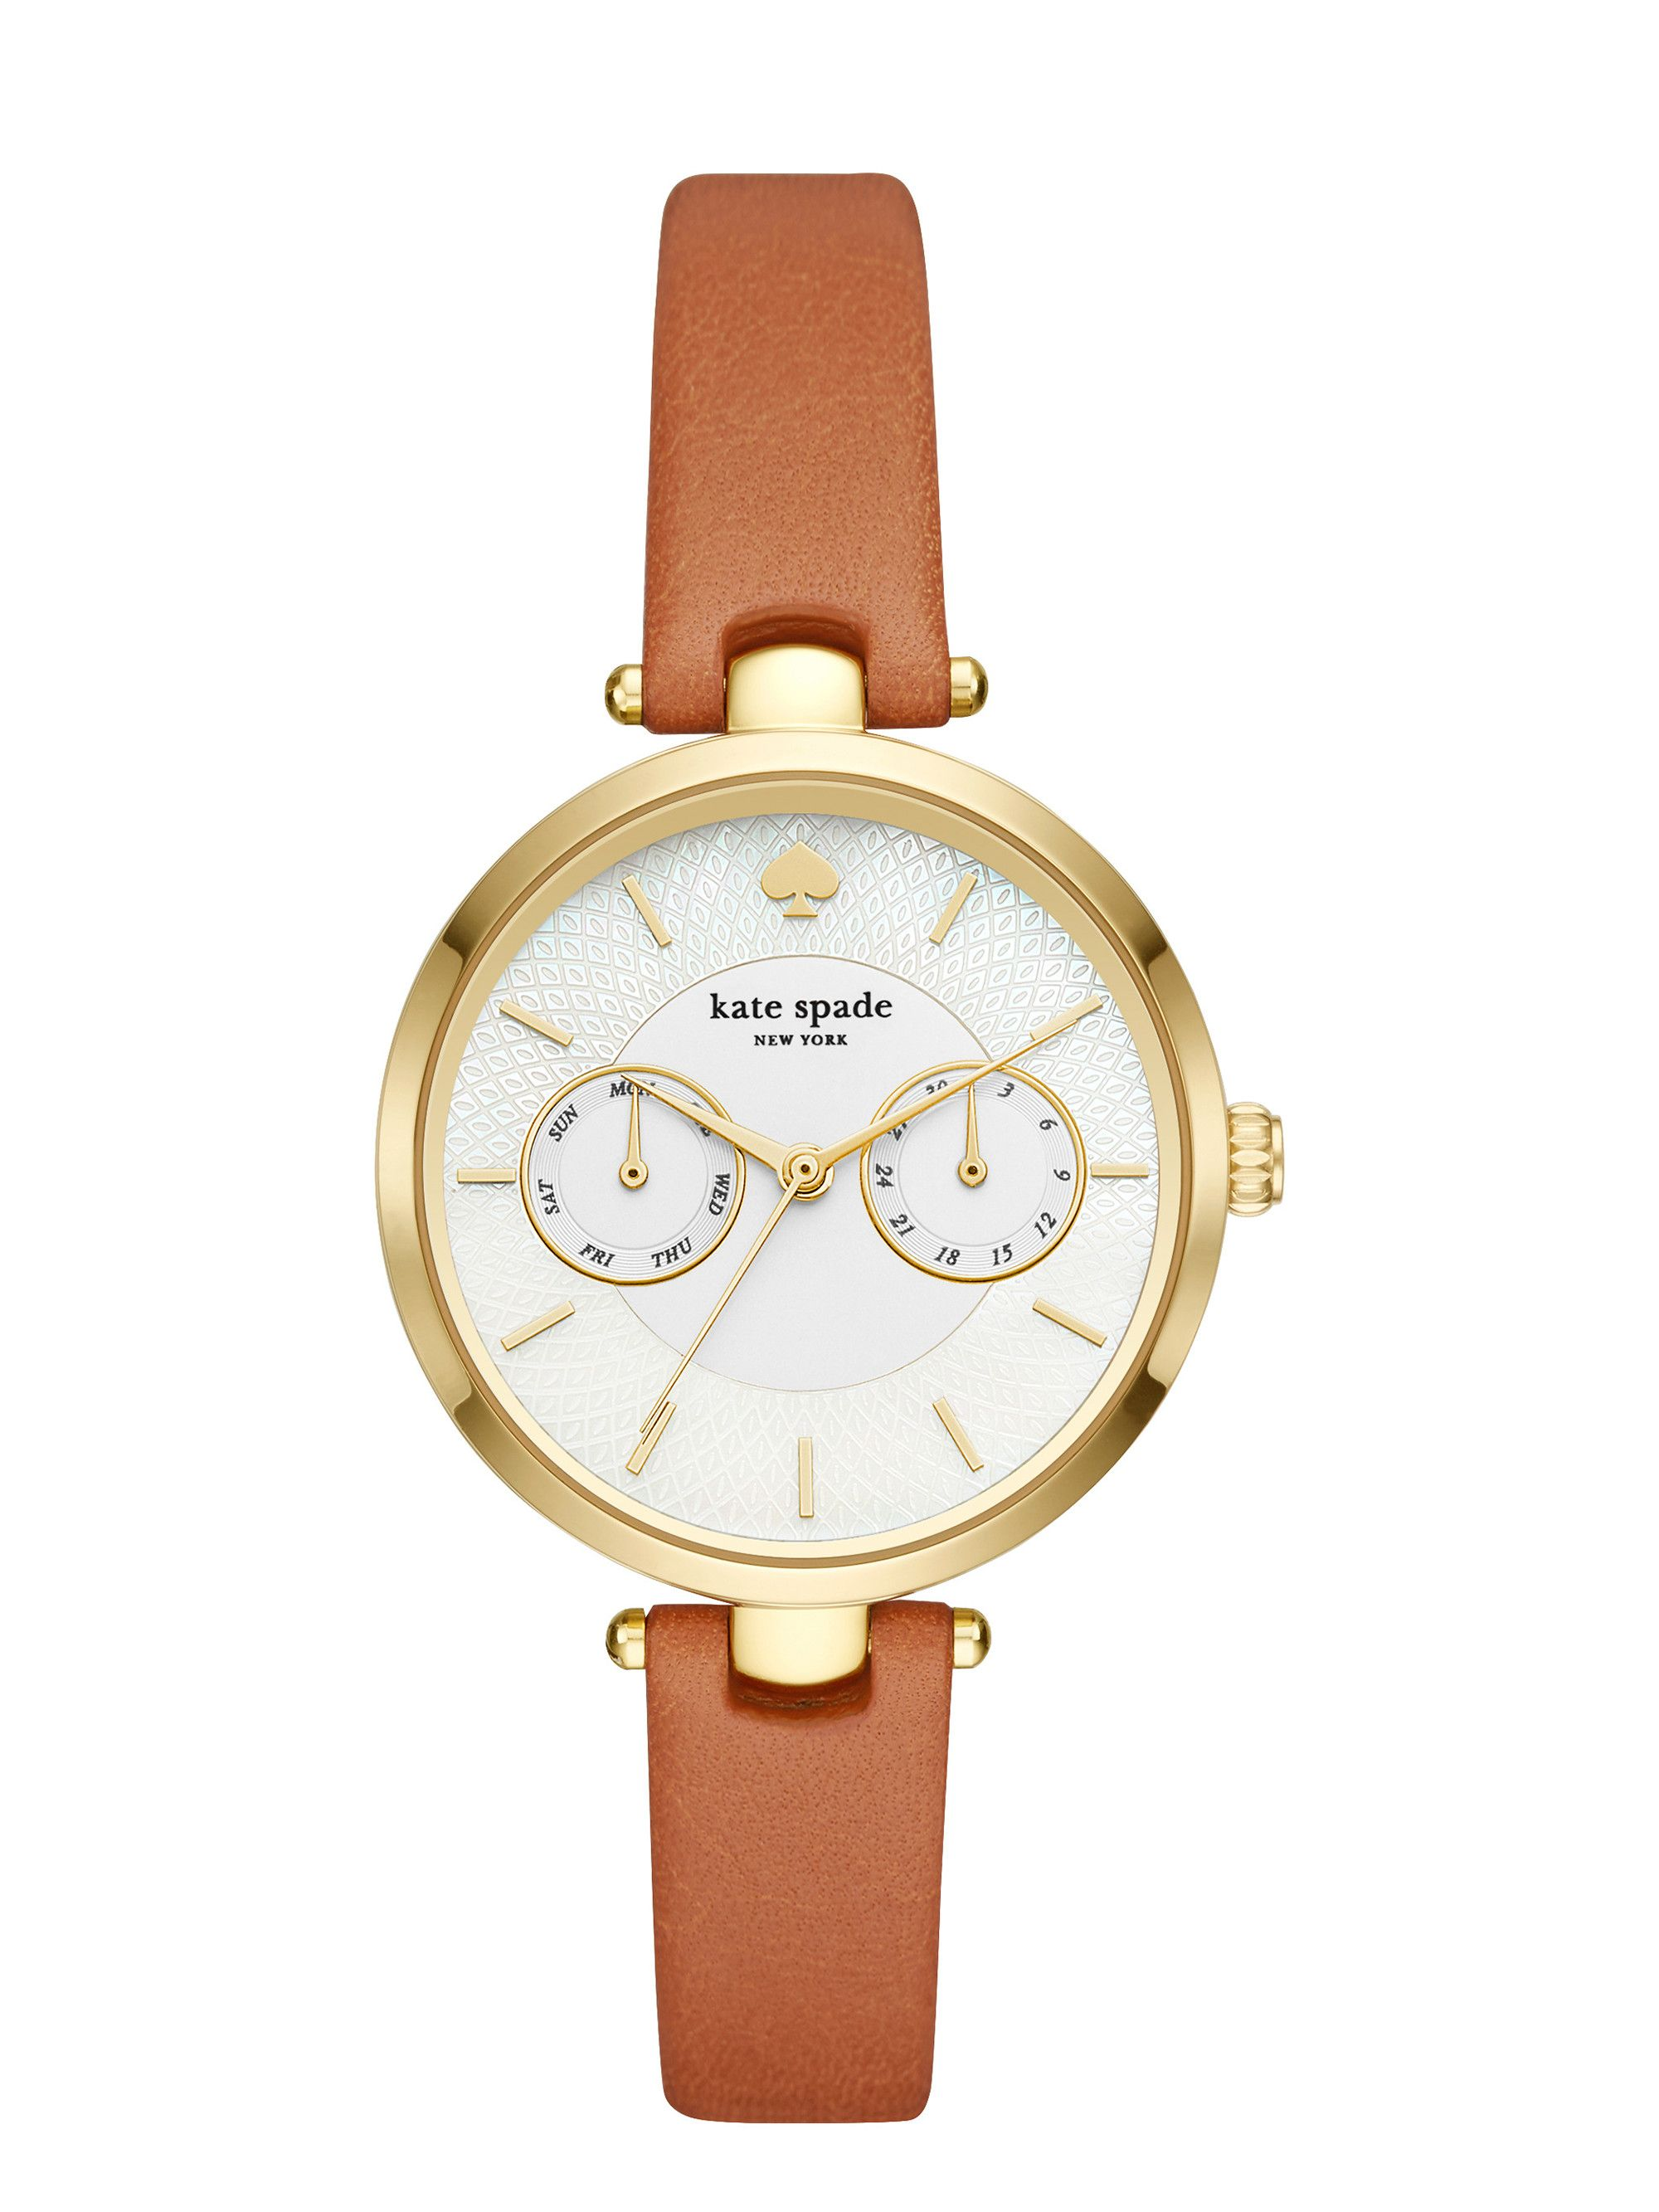 67cfb91a04b5 Kate Spade Gold Tone Holland Watch - Shop My Favourite Things (affiliate)